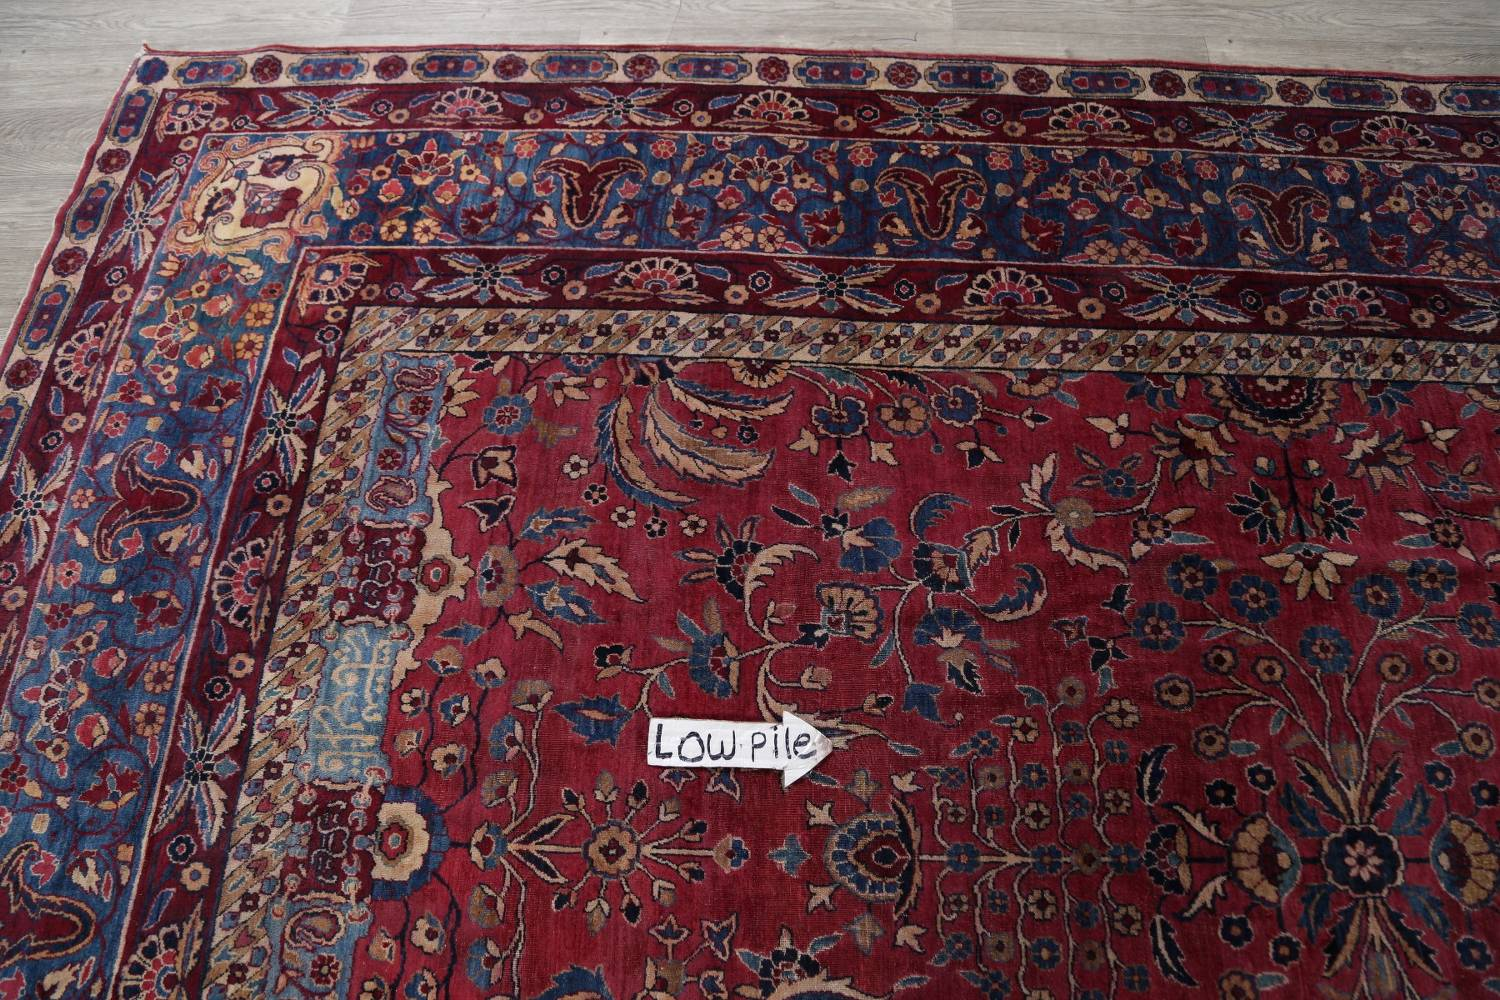 Pre-1900 Antique Floral Sultanabad Persian Hand-Knotted 12x18 Wool Rug image 18